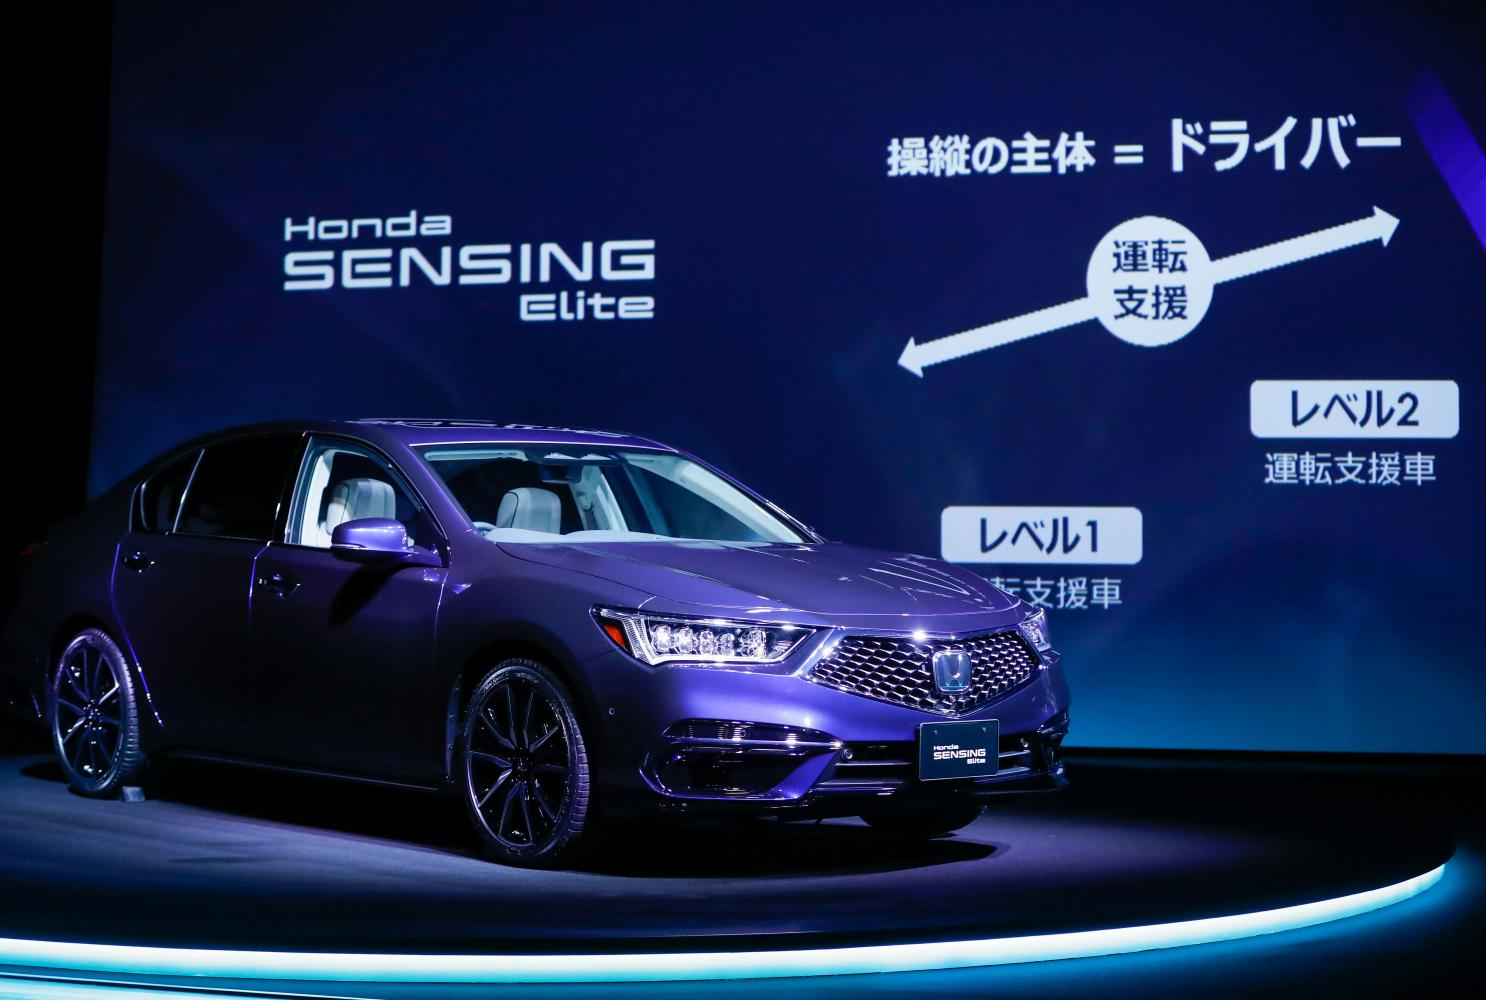 The all-new Legend sedan equipped with Level 3 autonomous driving technology is seen during an unveiling in Tokyo yesterday. (Reuters photo)